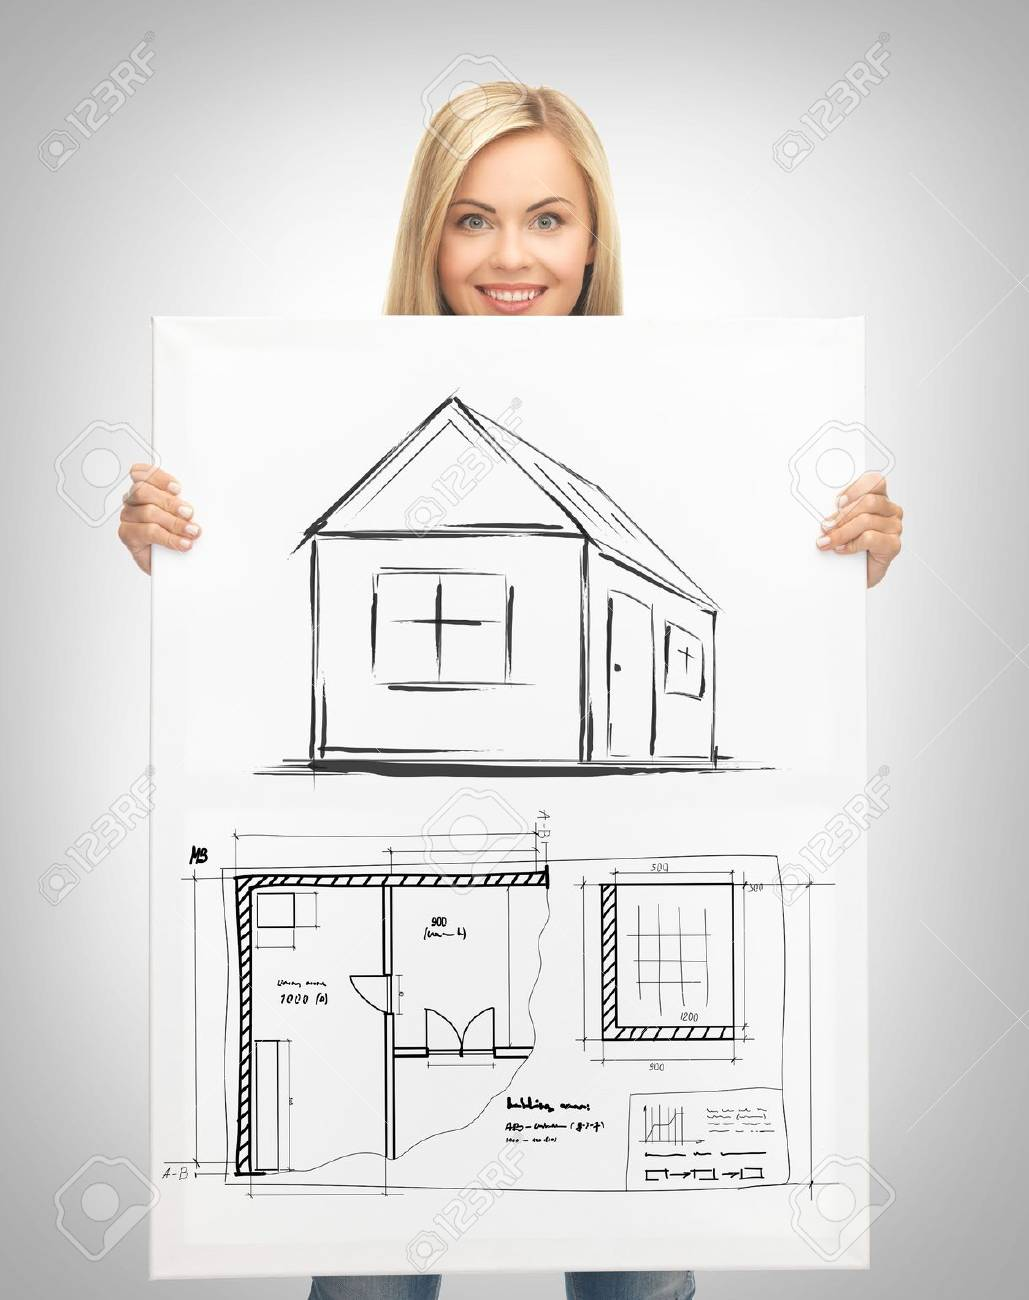 Real estate property business and accomodation concept woman real estate property business and accomodation concept woman holding picture with house and malvernweather Image collections